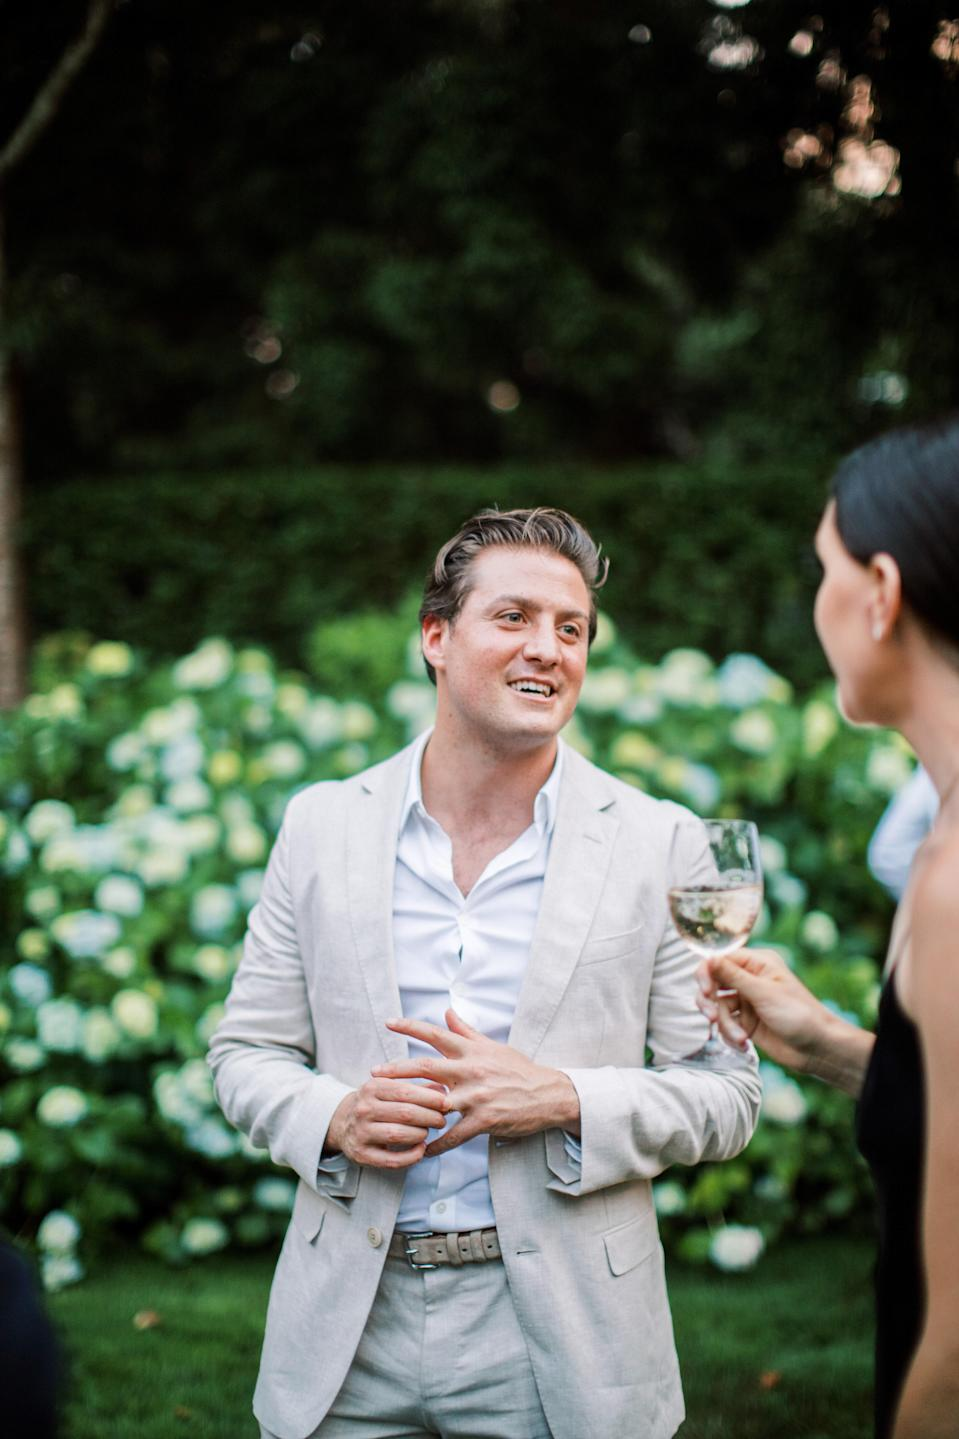 Ben futzing around with his new wedding band while chatting with one of our guests, Samantha. Wearing his ring took some getting used to!